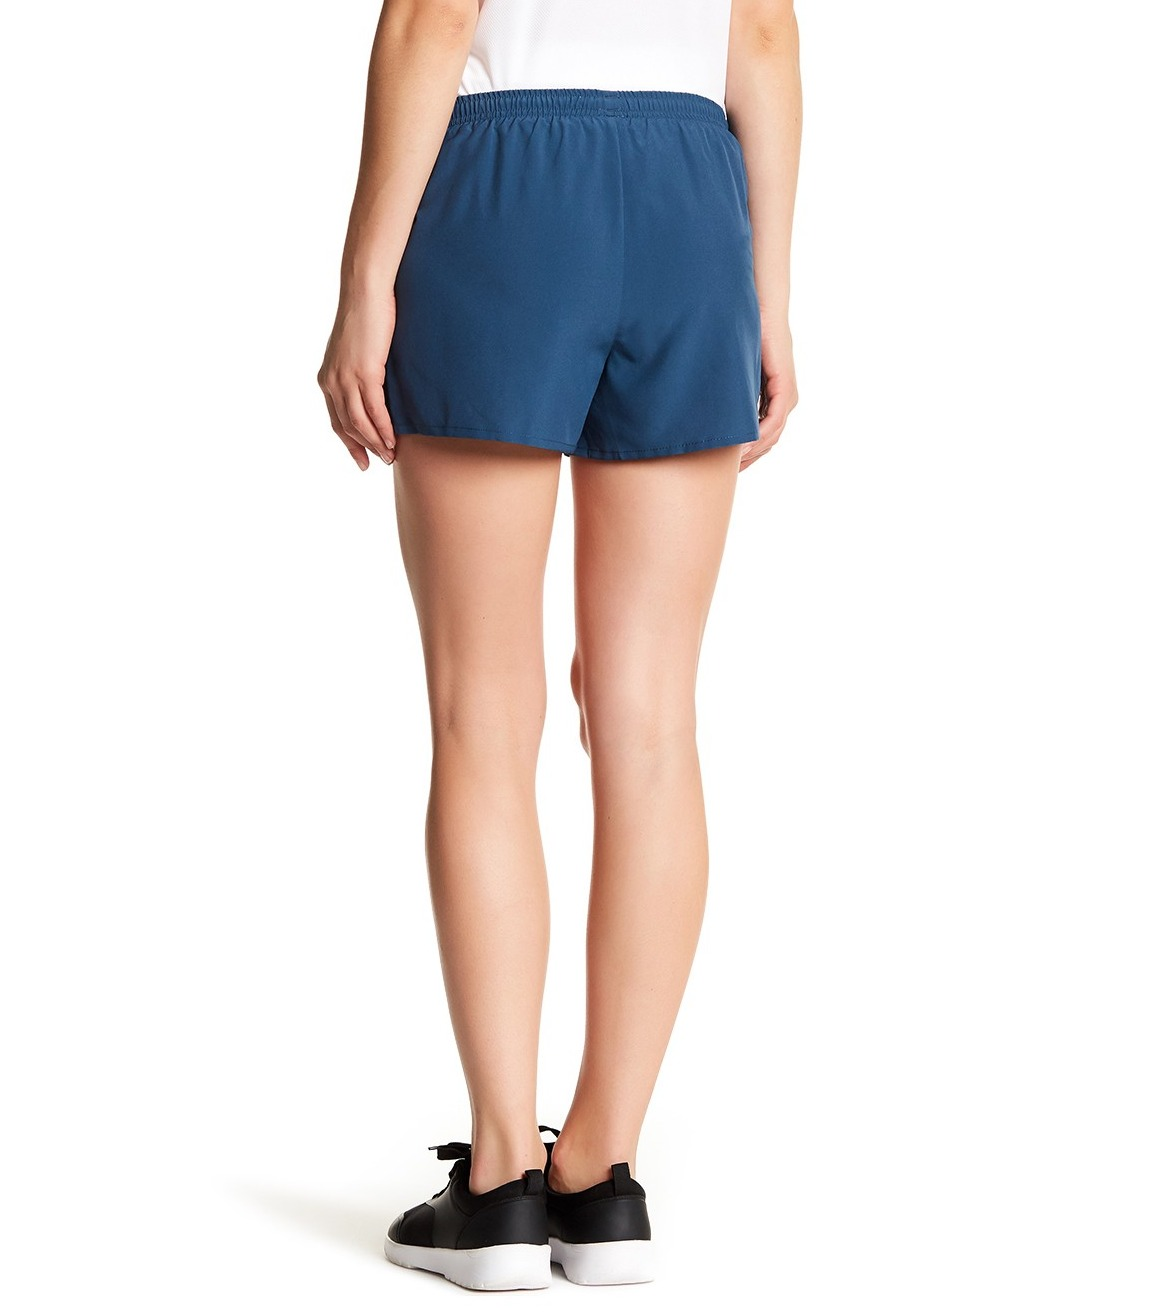 Asics-NEW-Solid-Women-039-s-Performance-Woven-Athletic-Shorts-30 thumbnail 11